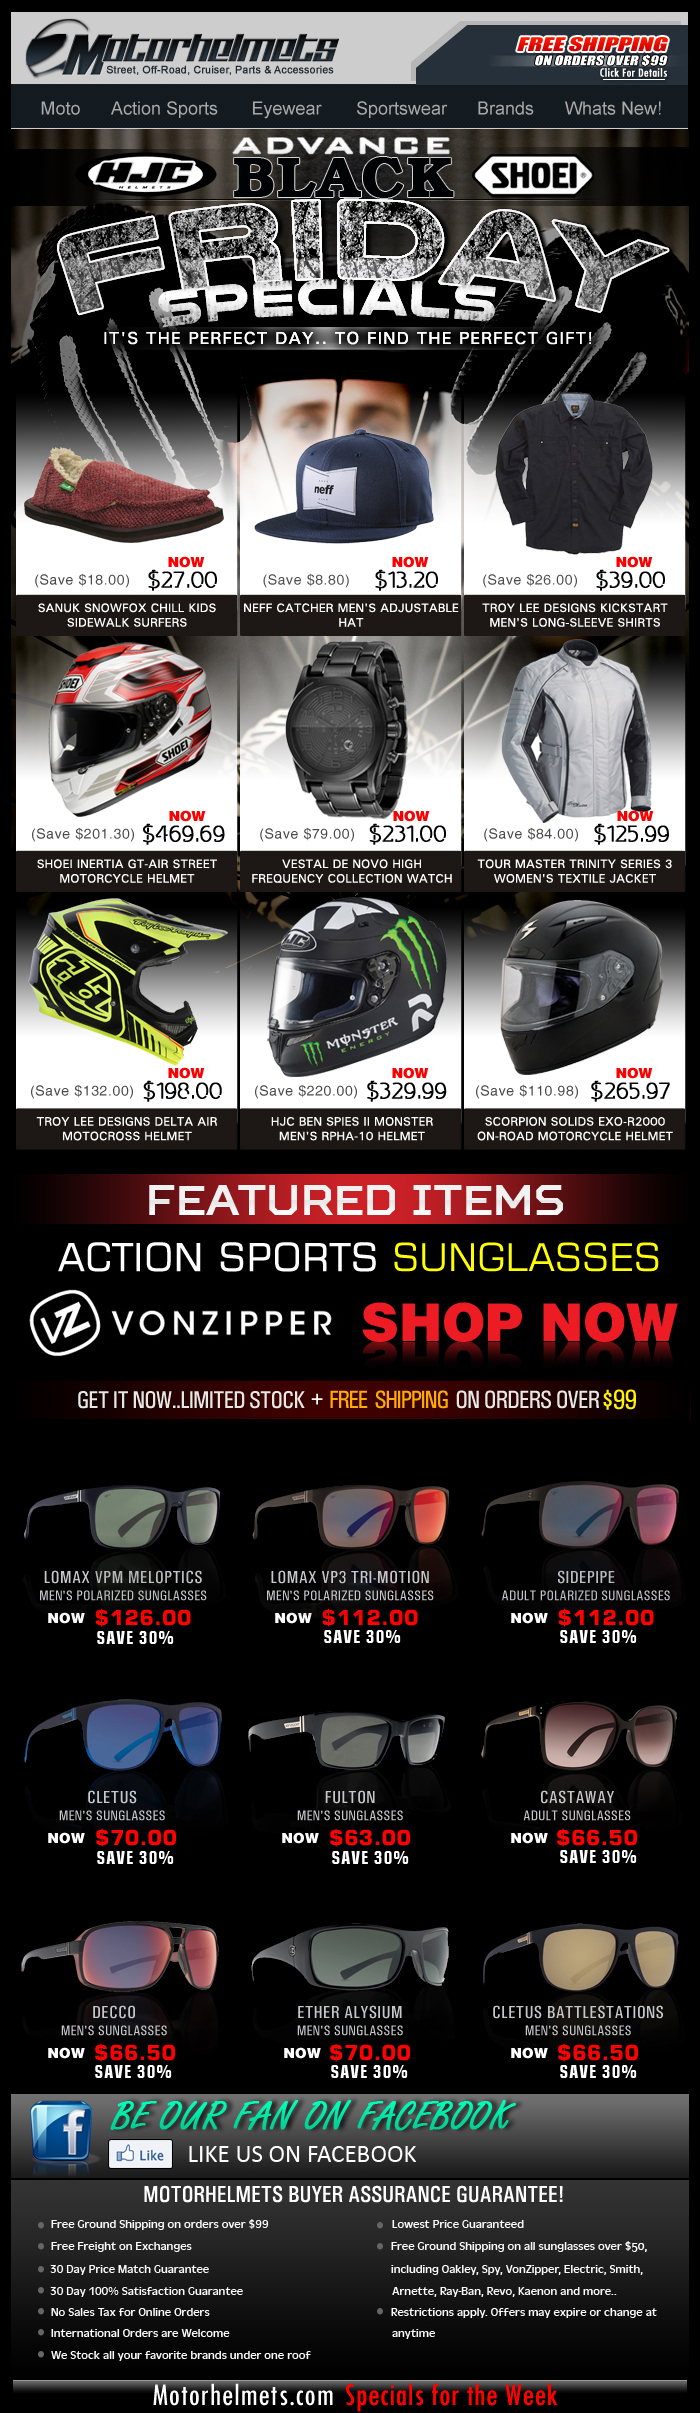 Early BLACK FRIDAY Deals...HJC, SHOEI and more premium items!